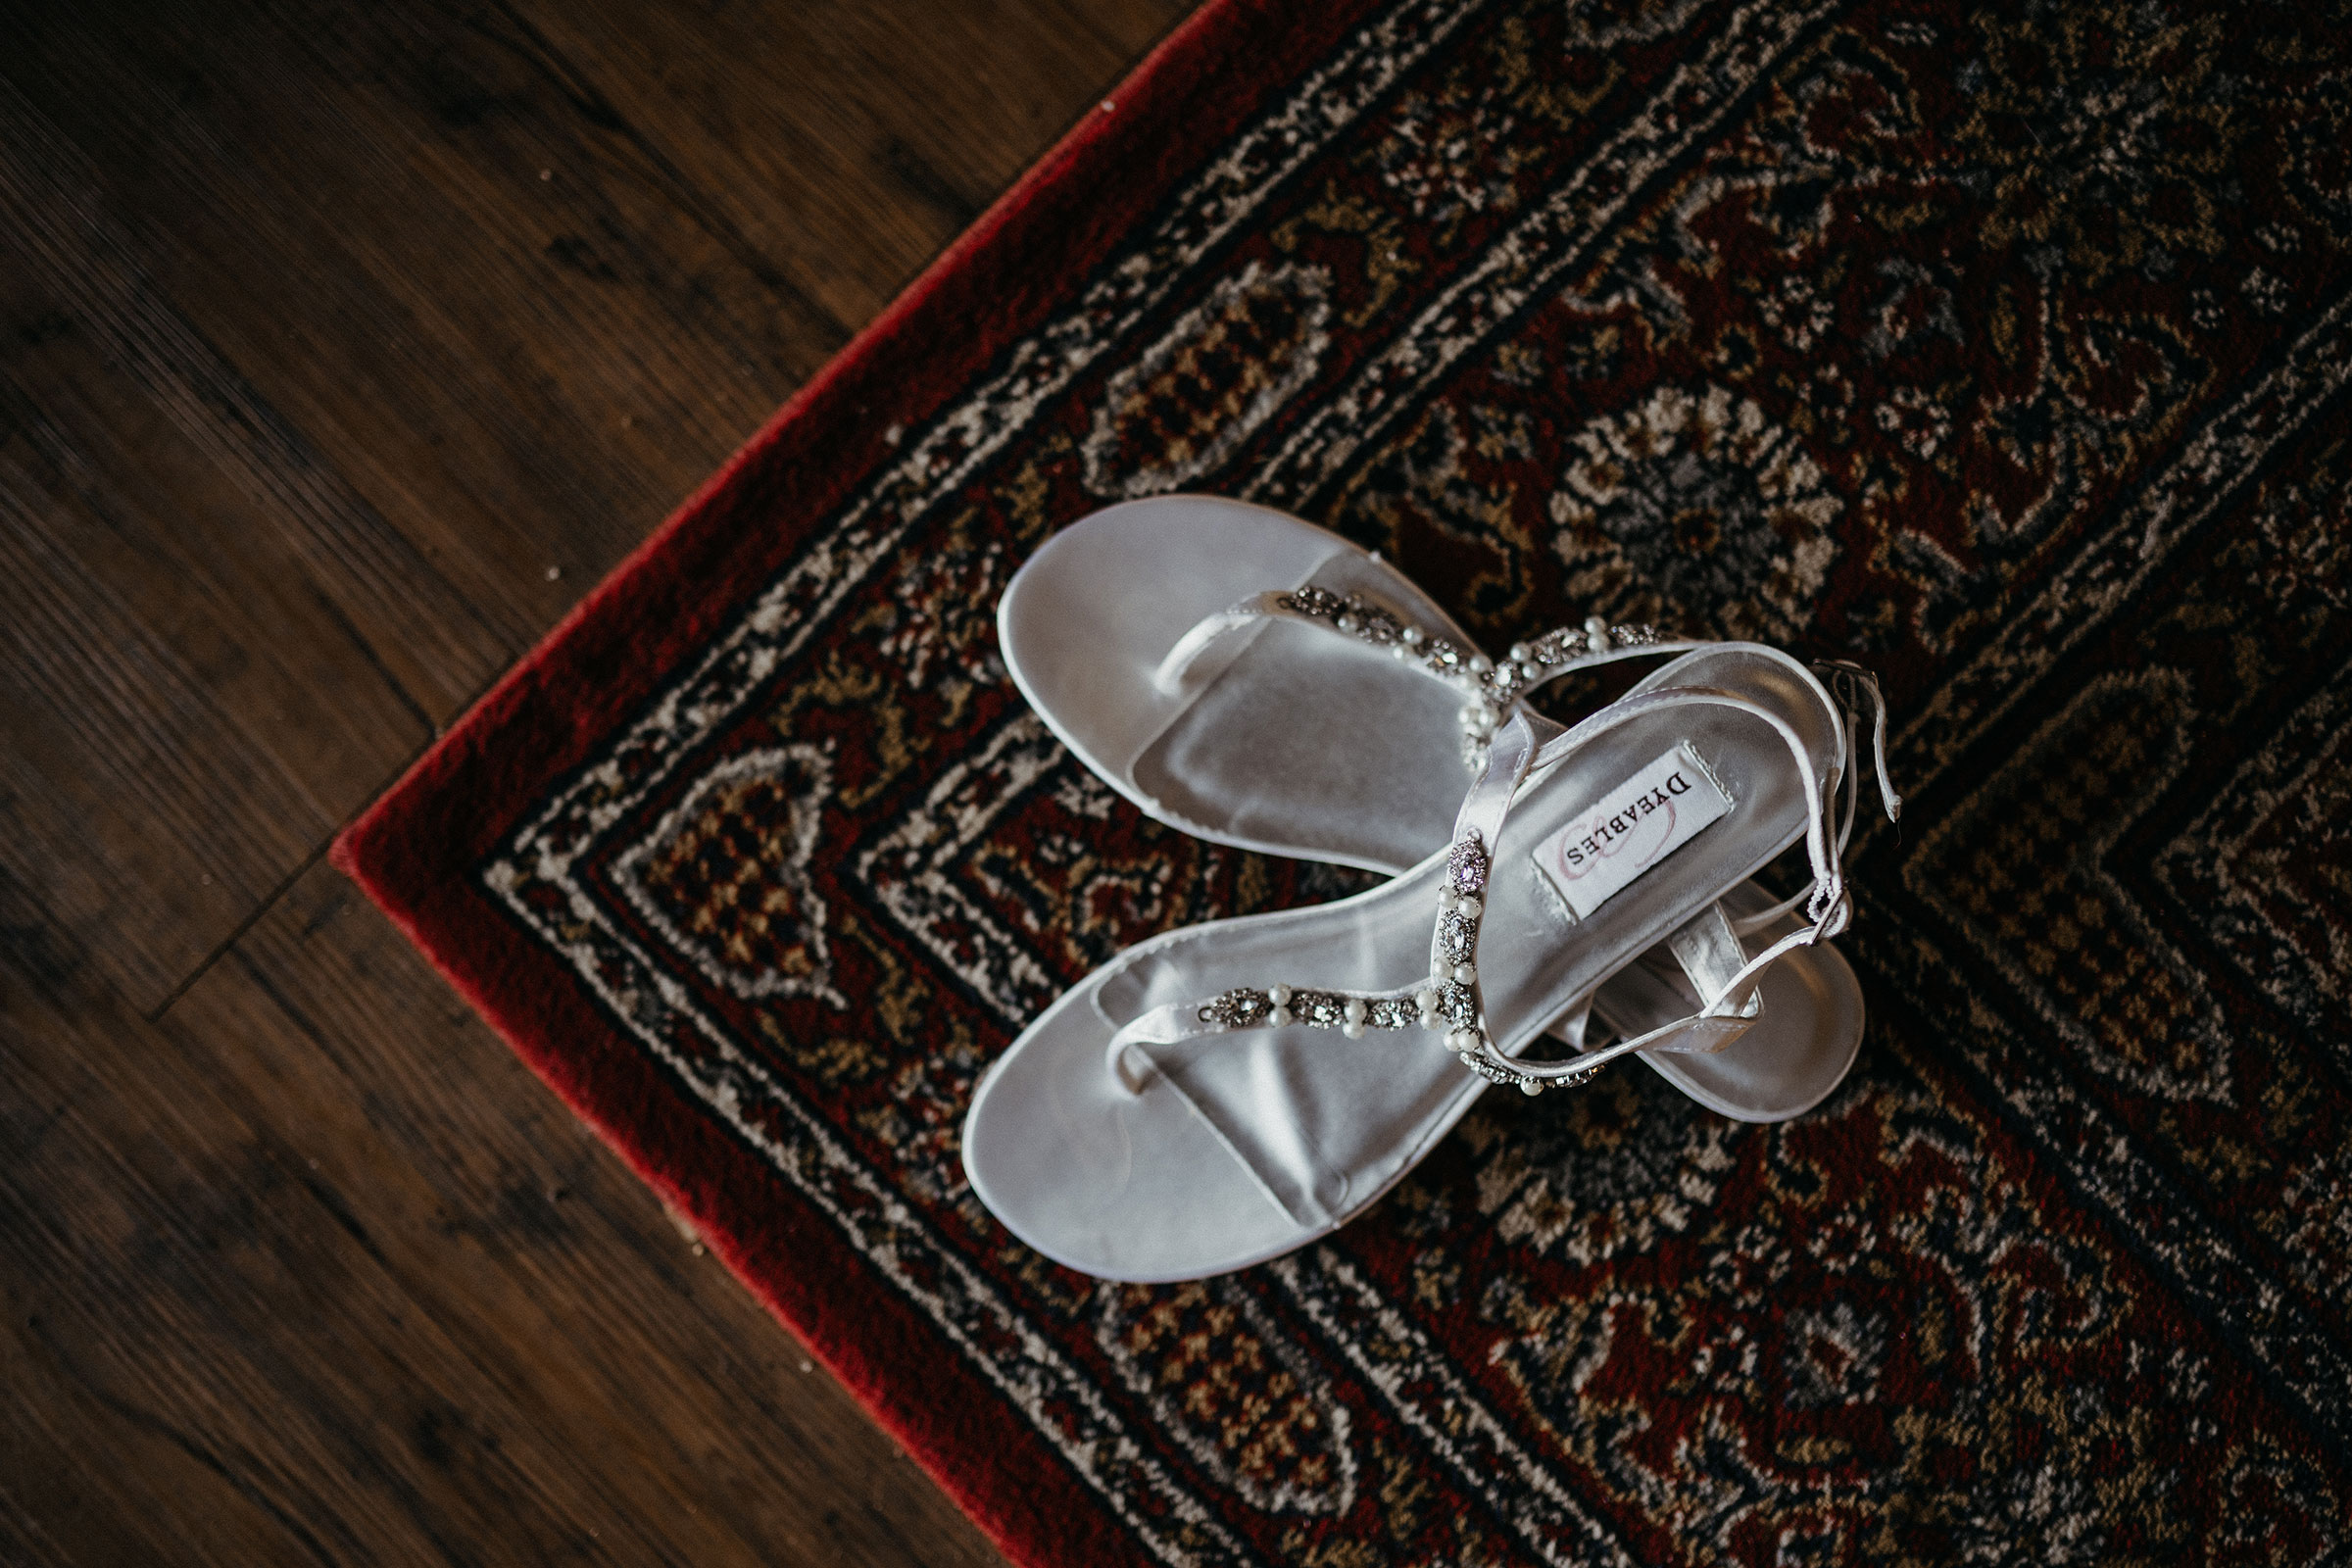 bride-shoes-on-old-rug-decades-event-center-building-desmoines-iowa-raelyn-ramey-photography..jpg